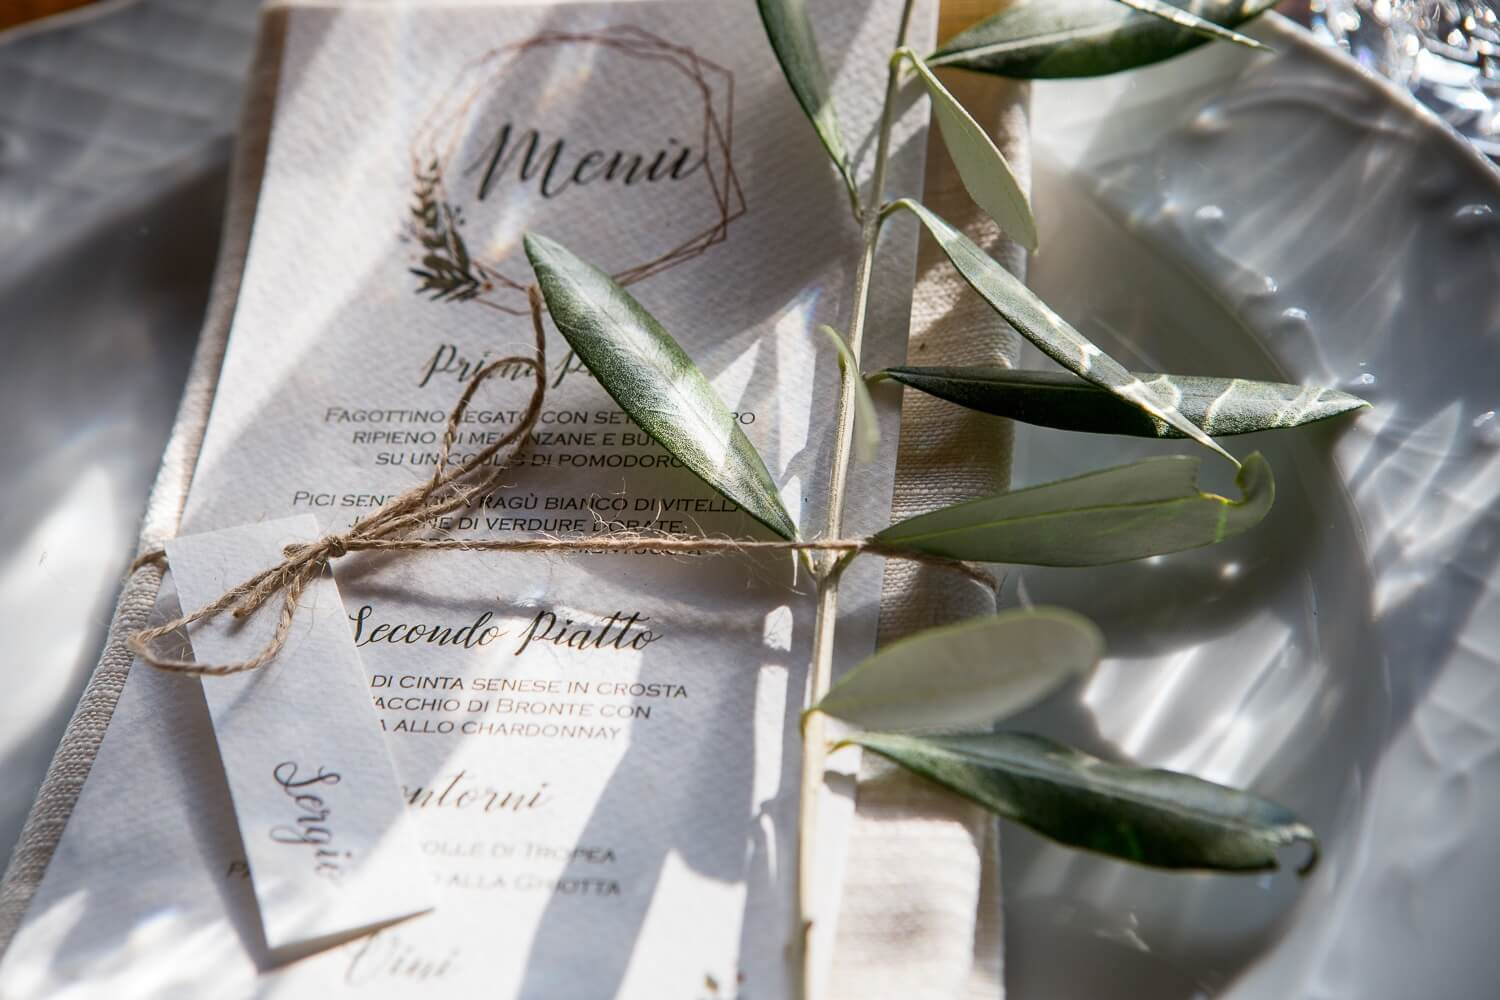 Wedding Menu and placeholders. Coordinated, highly personalized and elegant wedding stationary. Giulia Alessandri Wedding Planner, Wedding Design & Wedding Coordination in Tuscany.